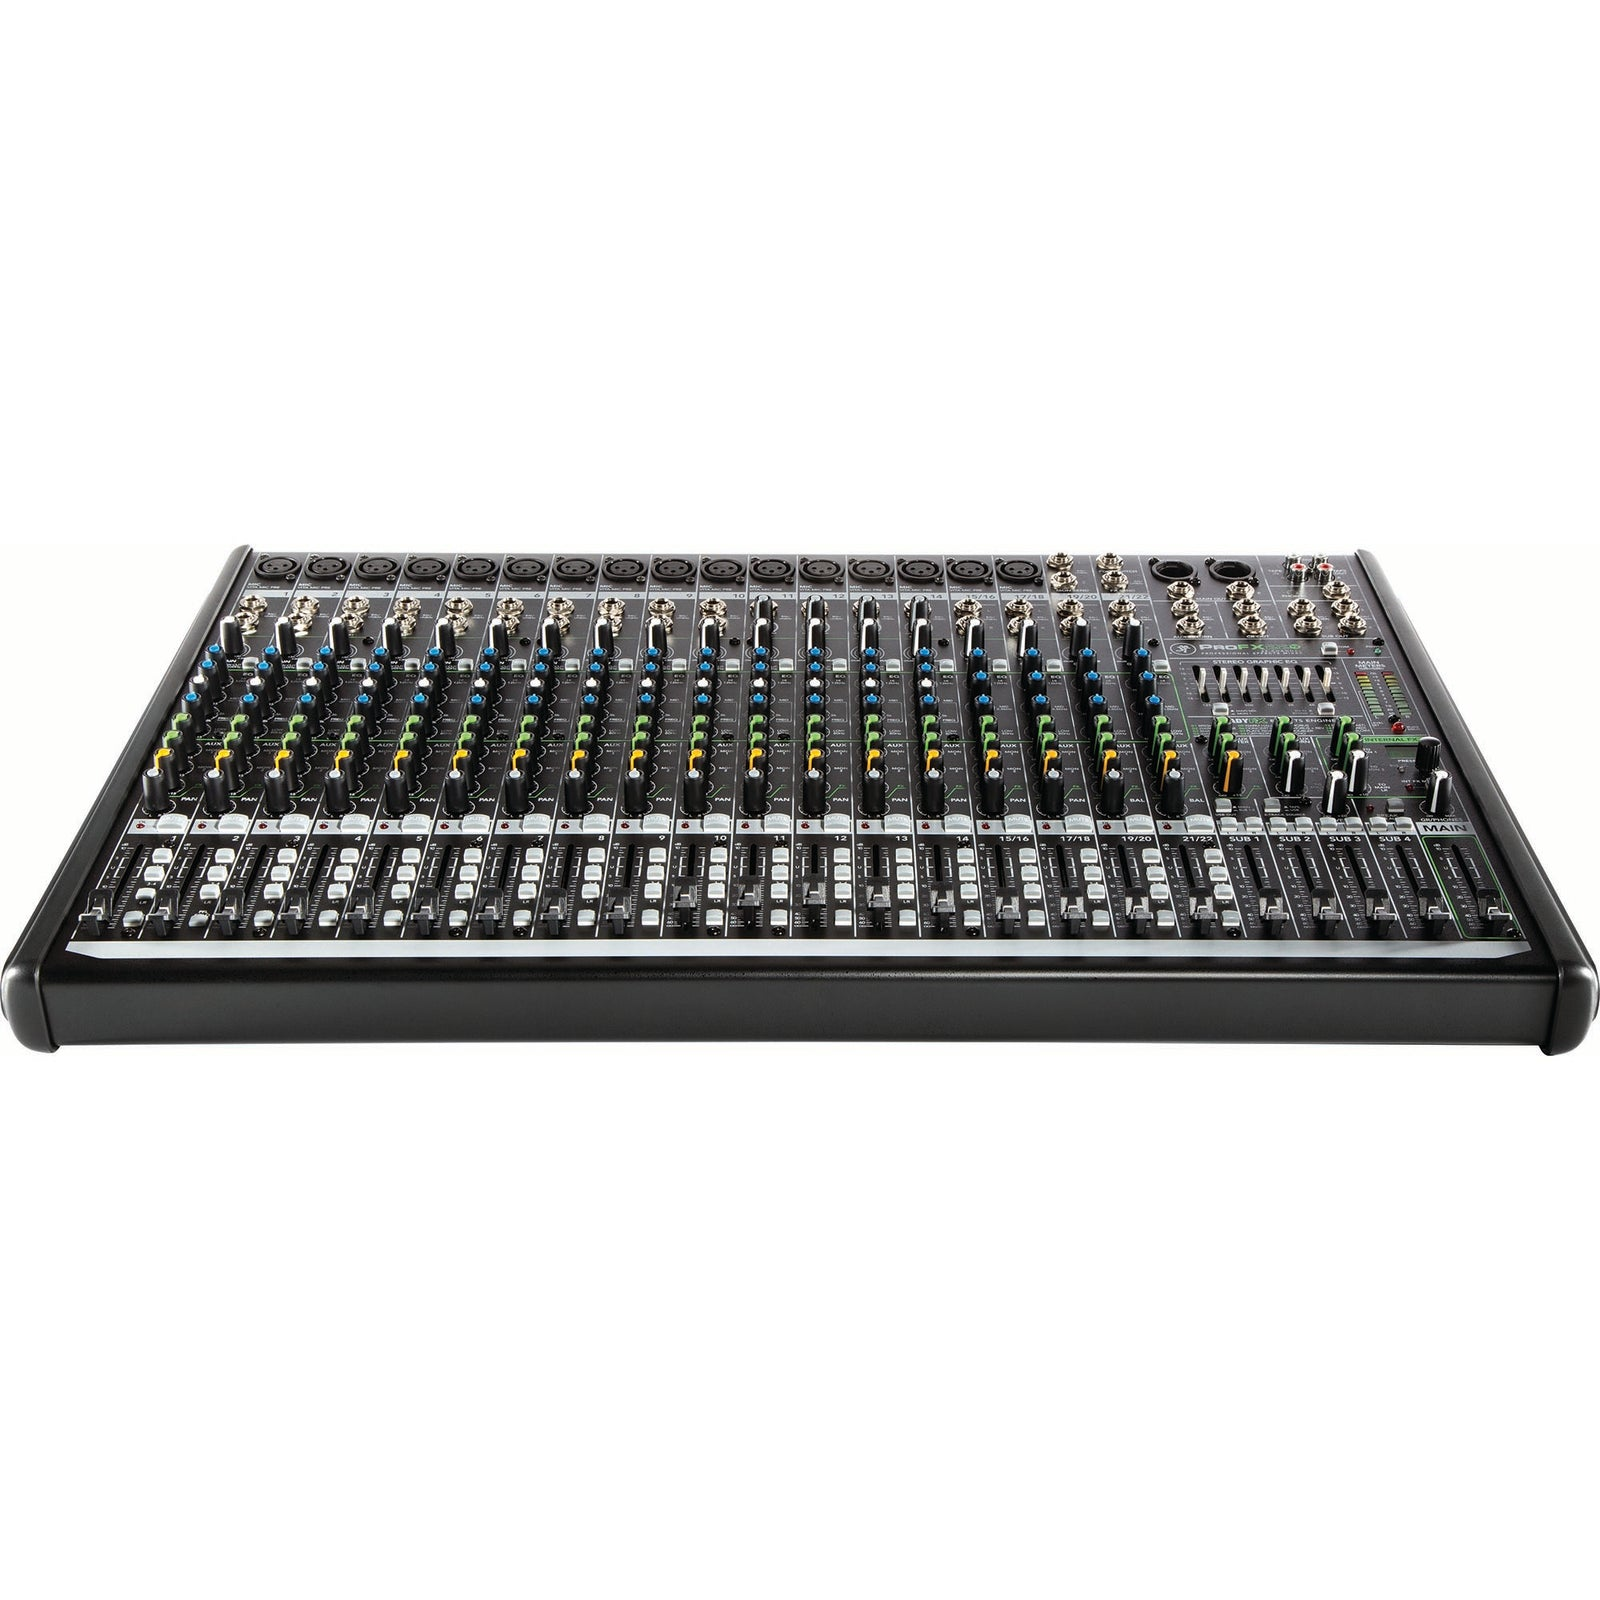 Mackie 22-Channel Mixer With Build-In Effects And USB